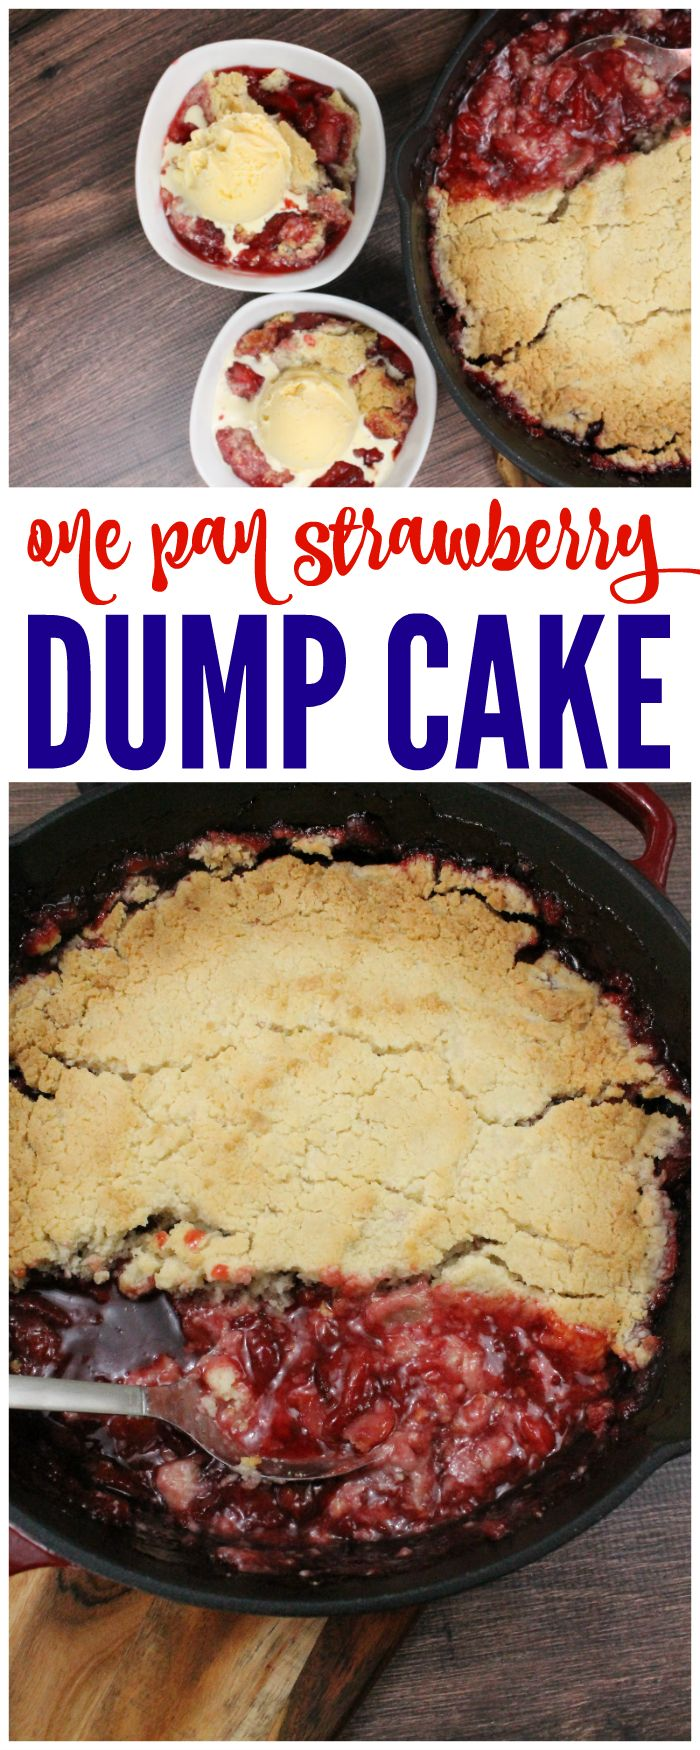 One Pan Strawberry Dump Cake Recipe - Perfect for a Summer Barbecue the 4th of July, Memorial Day and so much more! This is the easy dessert you've been looking for!